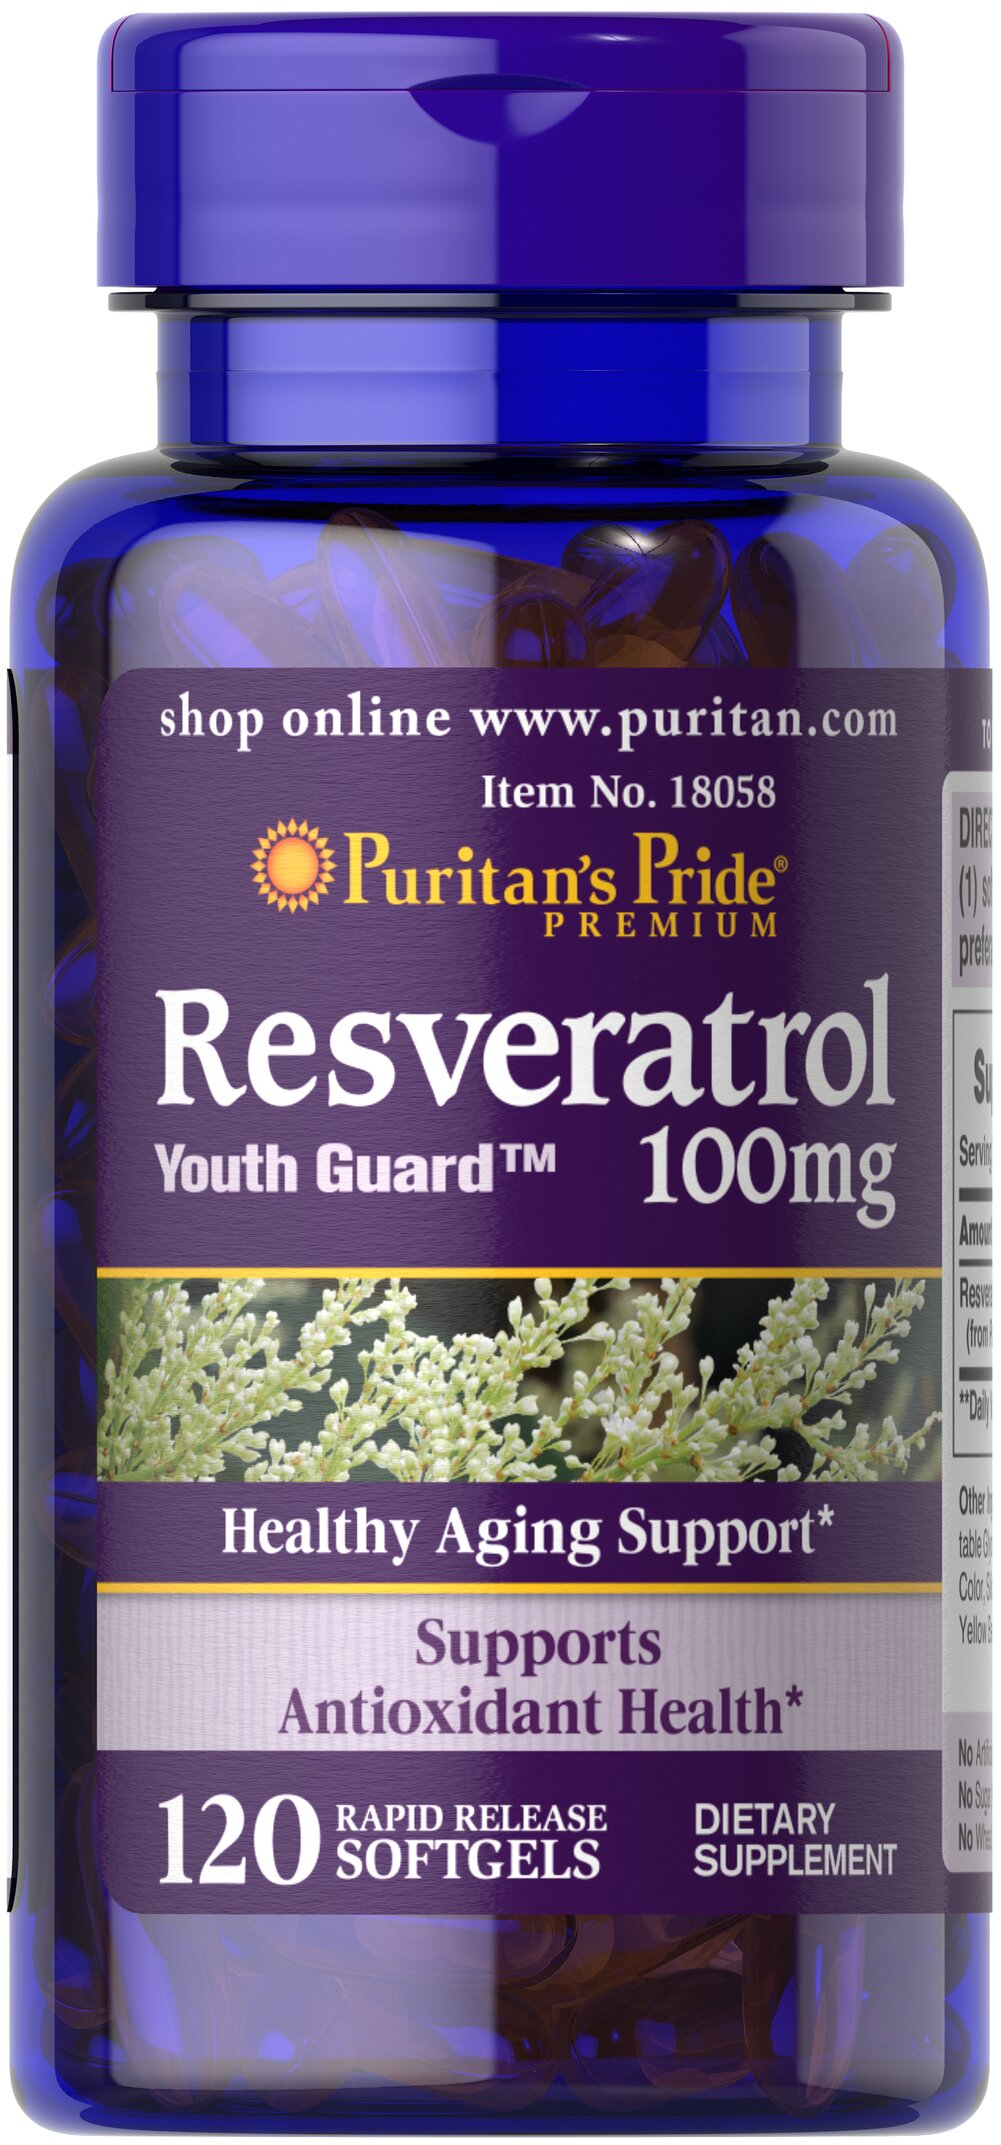 Resveratrol 100 mg <p>Resveratrol is a grape extract that contains flavonoids.</p><p>Possesses antioxidant properties.**</p><p>Helps fight the cell damaging effects of free radicals**</p><p>One 100 mg softgel contains more resveratrol than an entire bottle of red wine. </p> 120 Softgels 100 mg $42.99